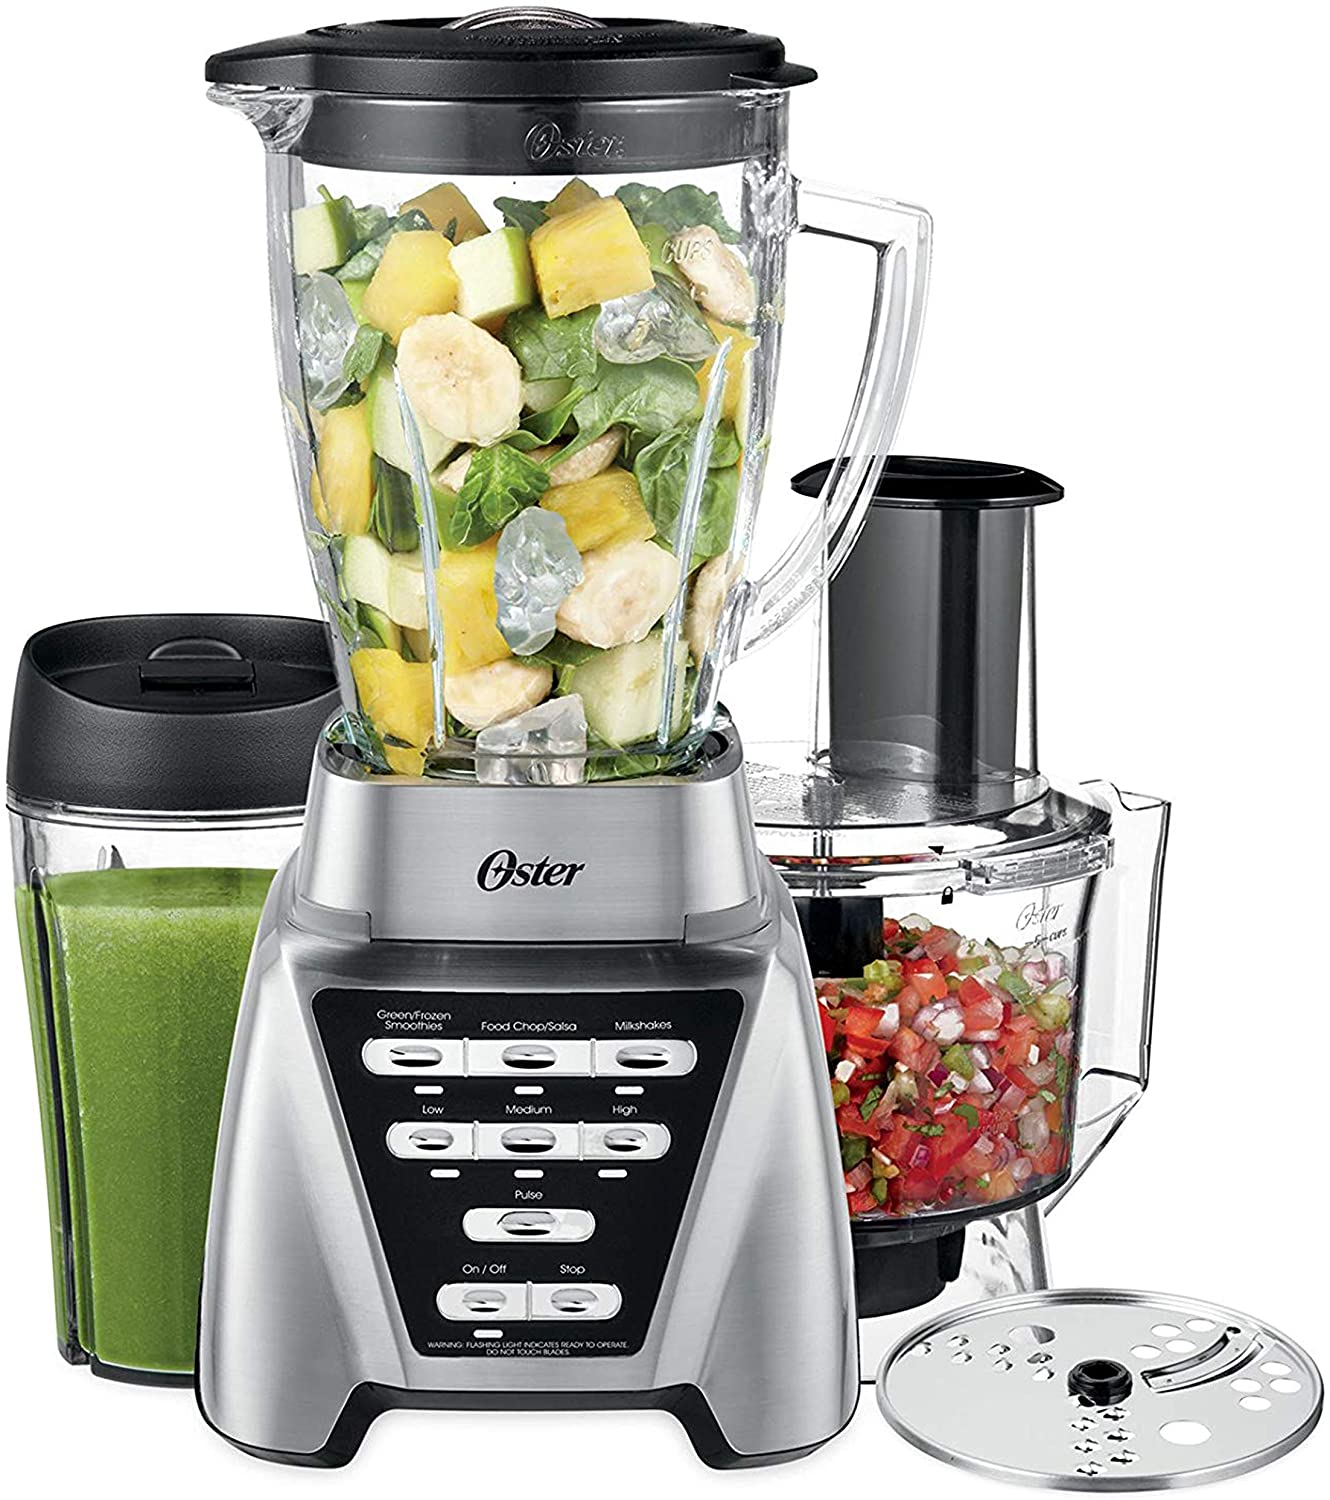 Oster Pro 1200 Blender Reviews